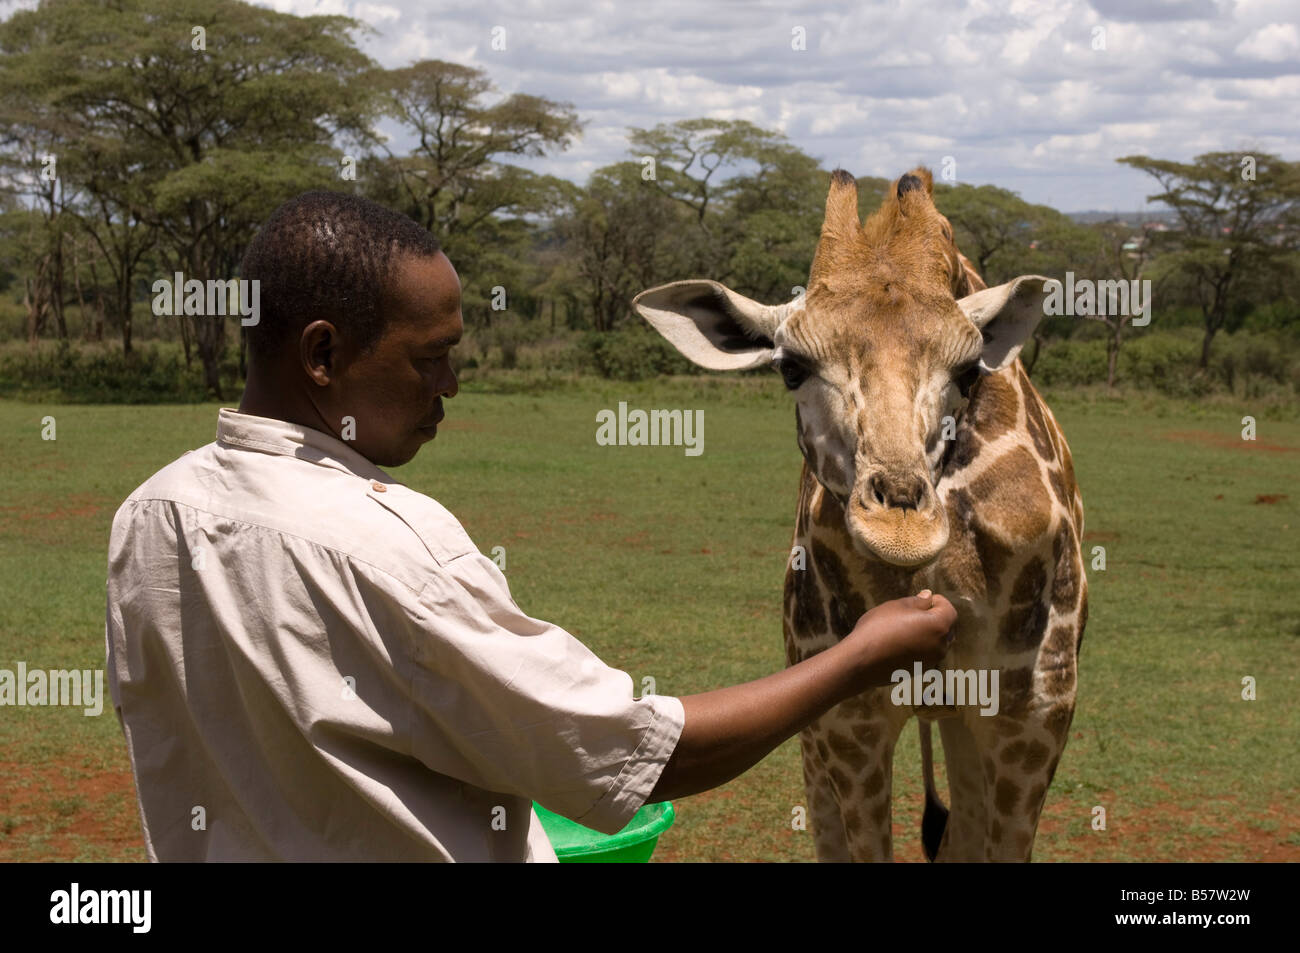 Rothschild giraffe, Giraffe Manor, Nairobi, Kenya, East Africa, Africa Stock Photo